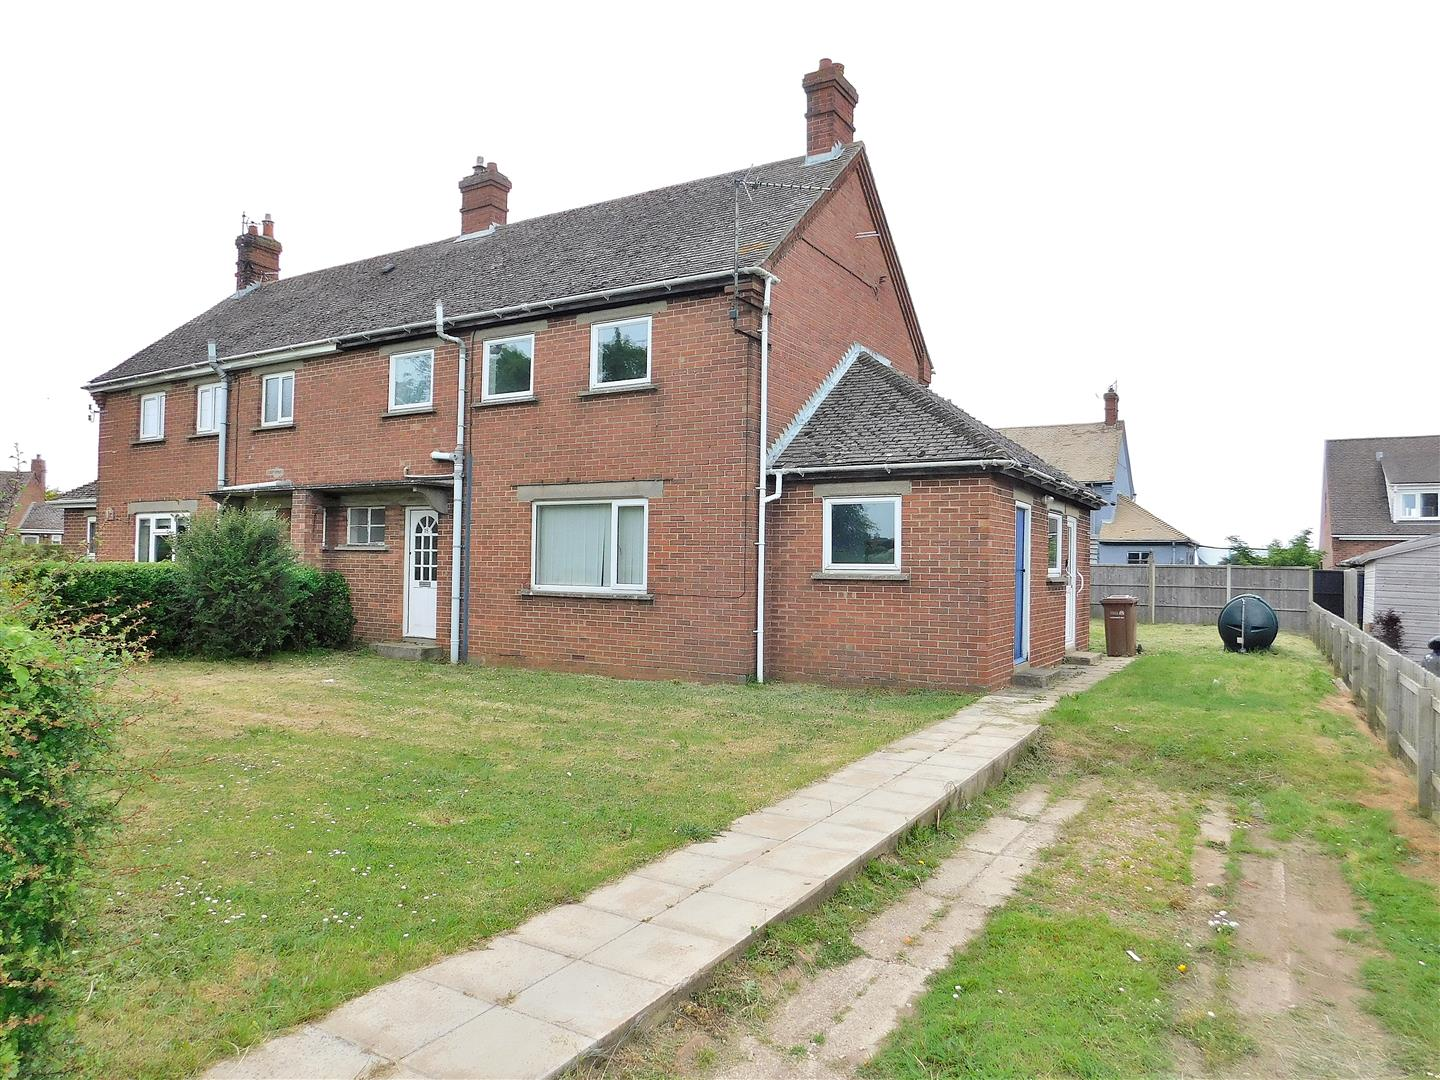 3 bed semi-detached house for sale in Bradmere Lane, King's Lynn, PE31